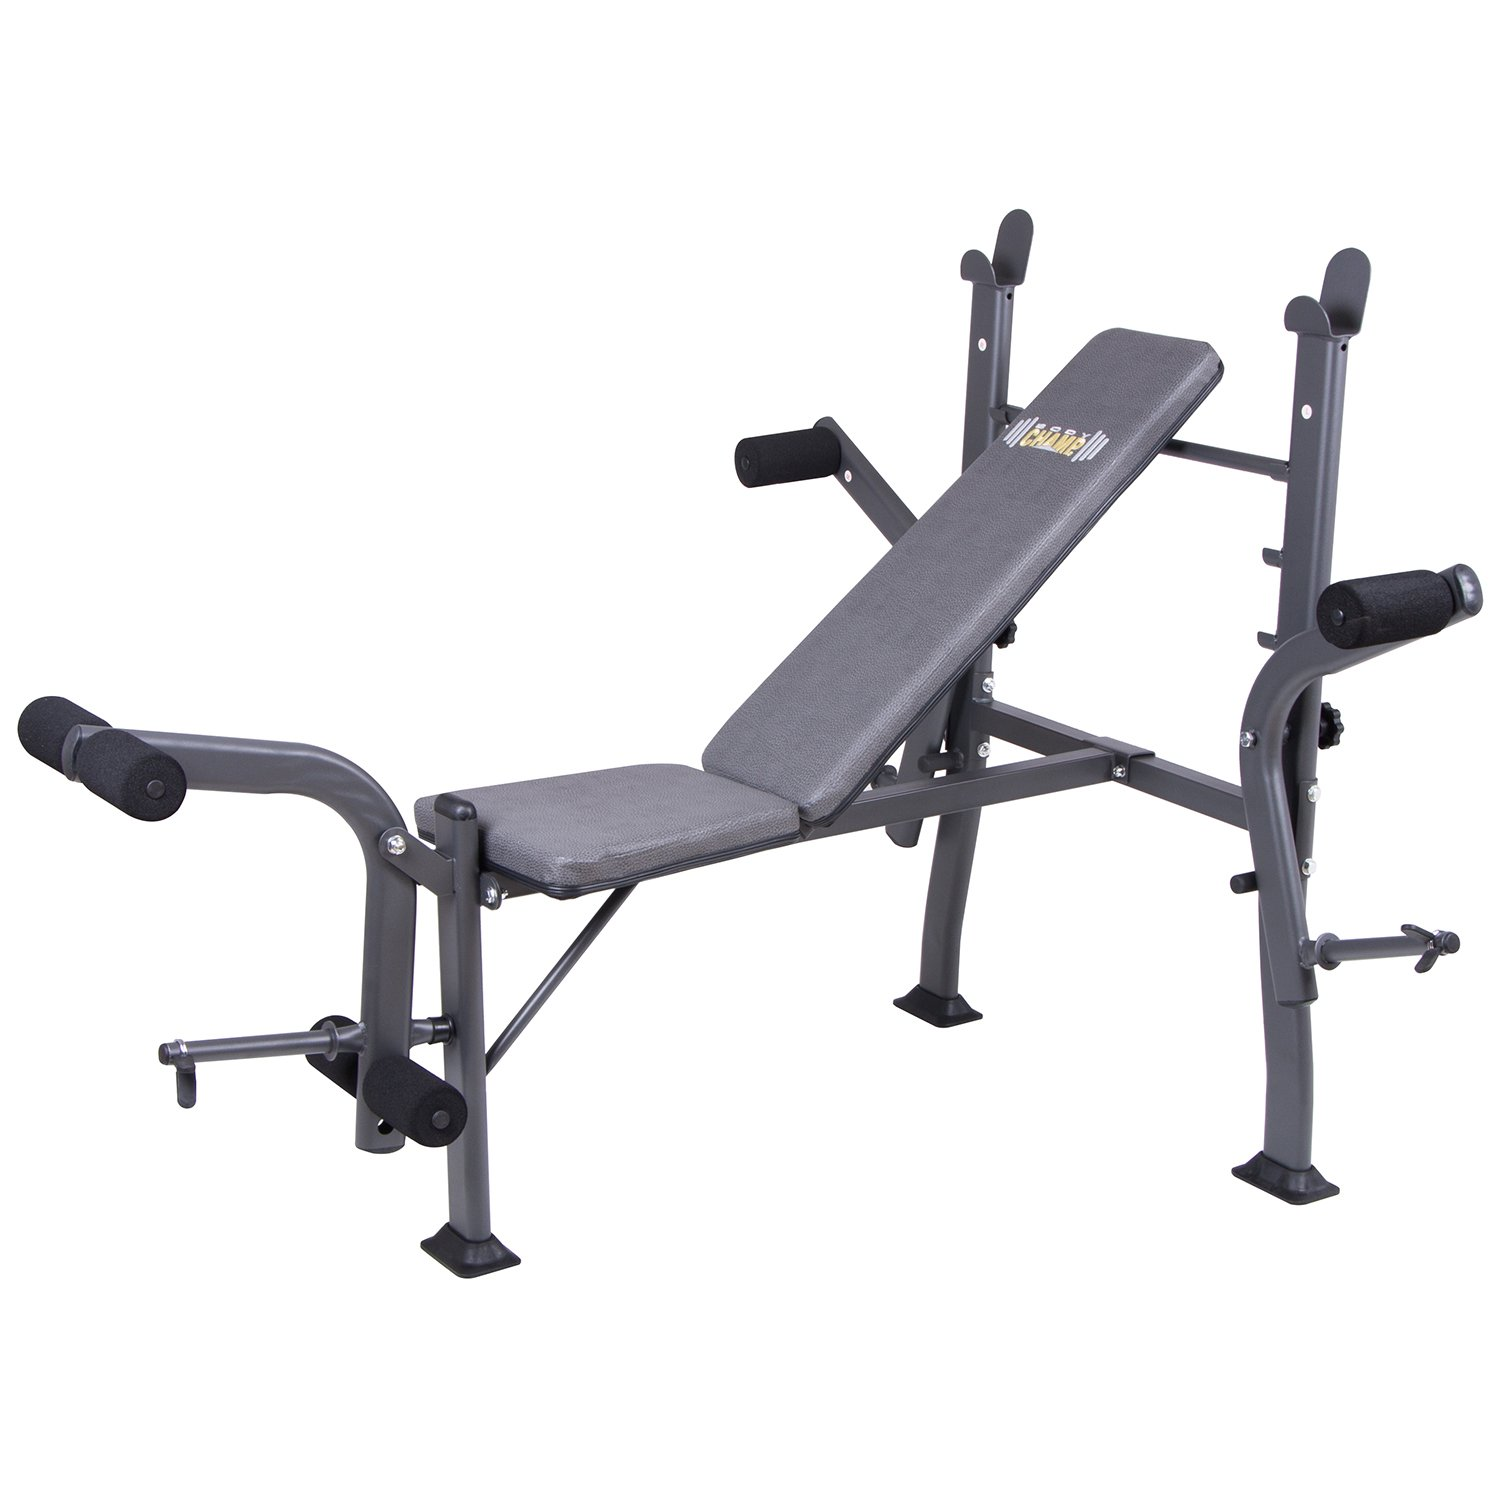 Body Champ BCB500 Black Friday Fitness Cyber Monday PROMO! Standard Weight Bench with Butterfly and Leg Lift Curl Developer Extension Attachment/Space Saving, Dark Gray/Black